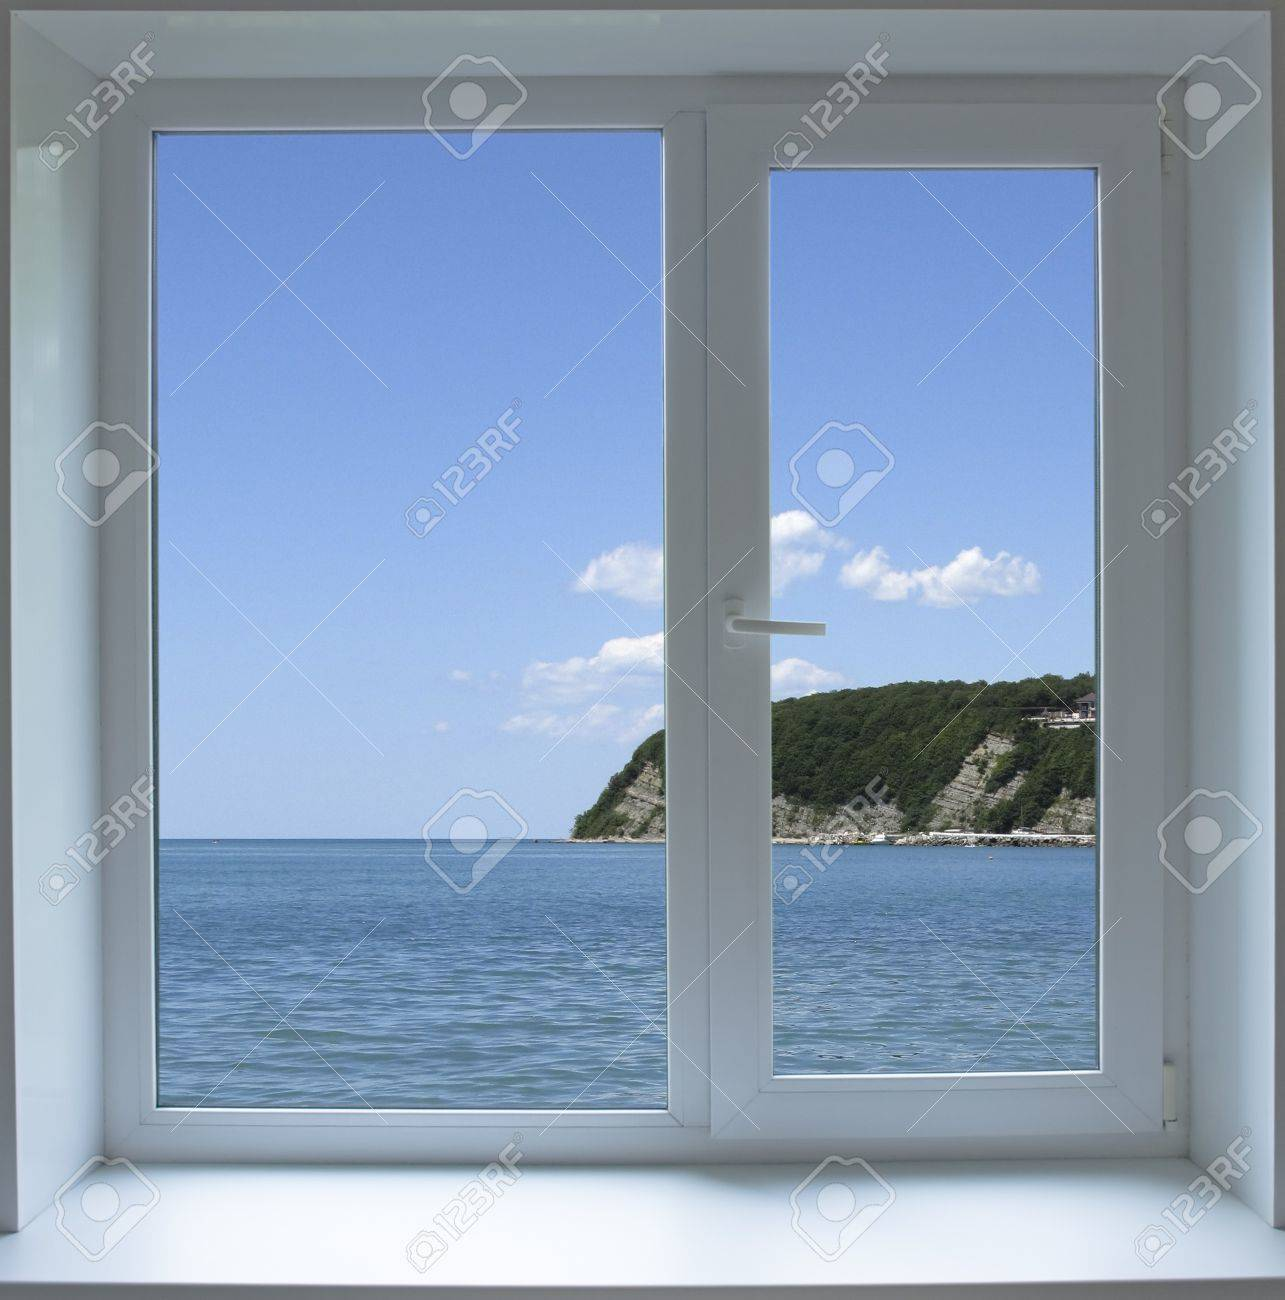 Closed window with views of the sea - 20330242